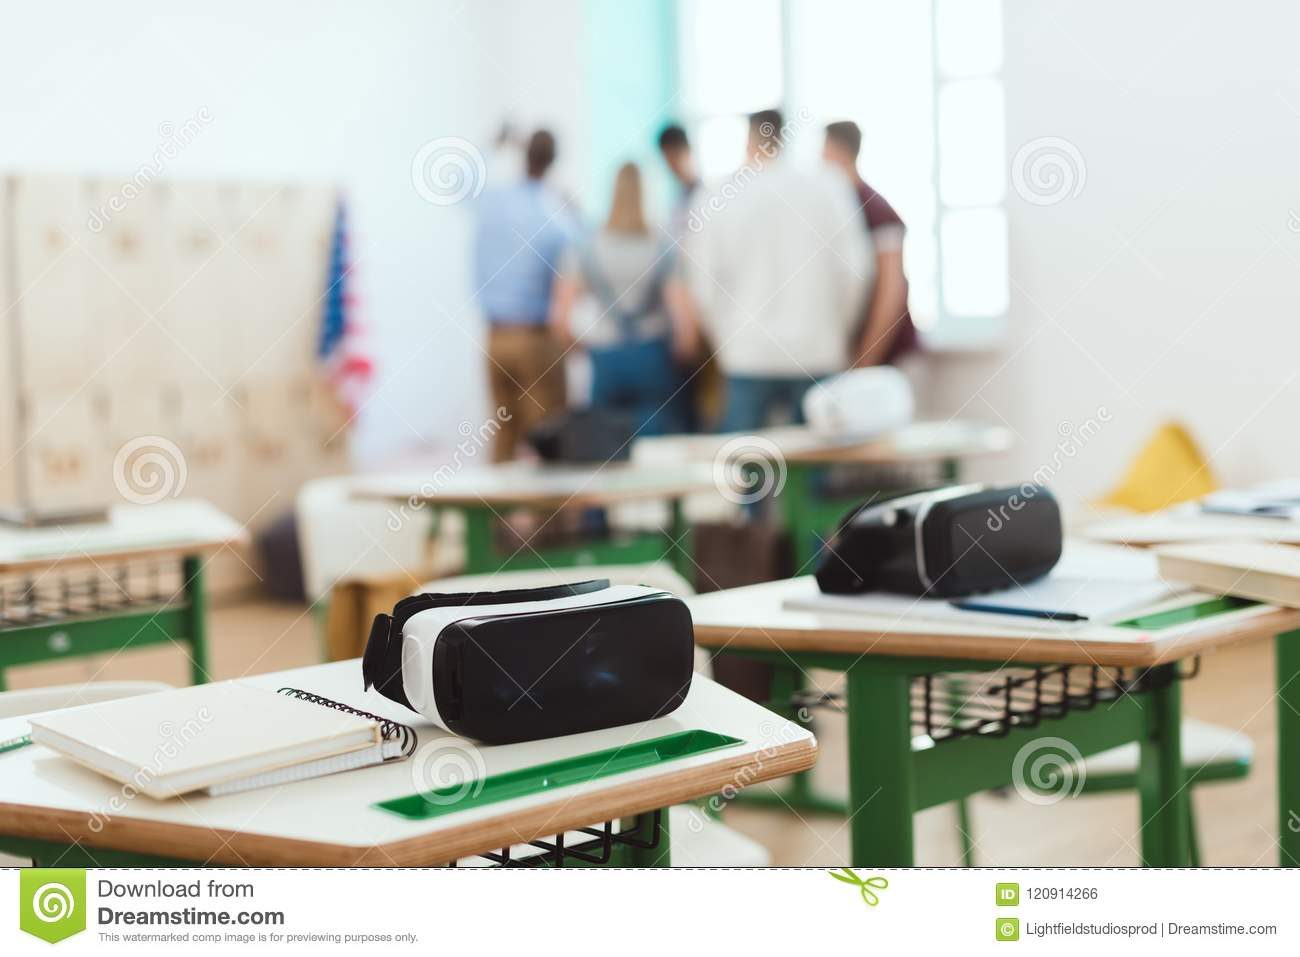 Virtual reality headsets on tables with teacher and high school students standing behind